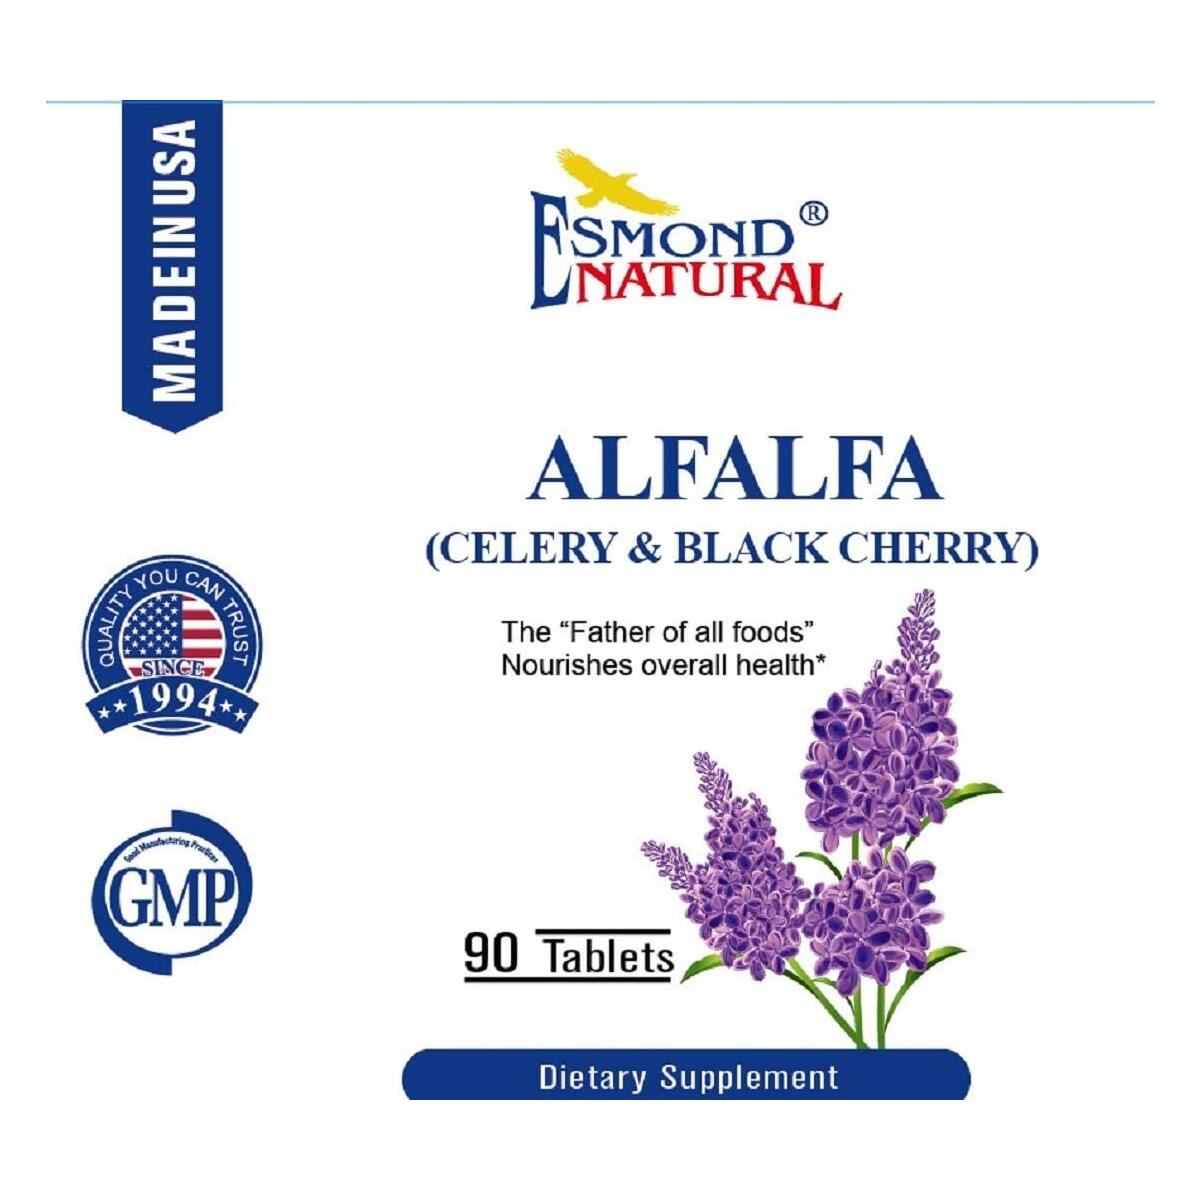 Esmond Natural: Alfalfa - Celery & Black Cherry (Nourishes Overall Health), GMP, Natural Product Assn Certified, Made in USA-1500mg, 90 Tablets